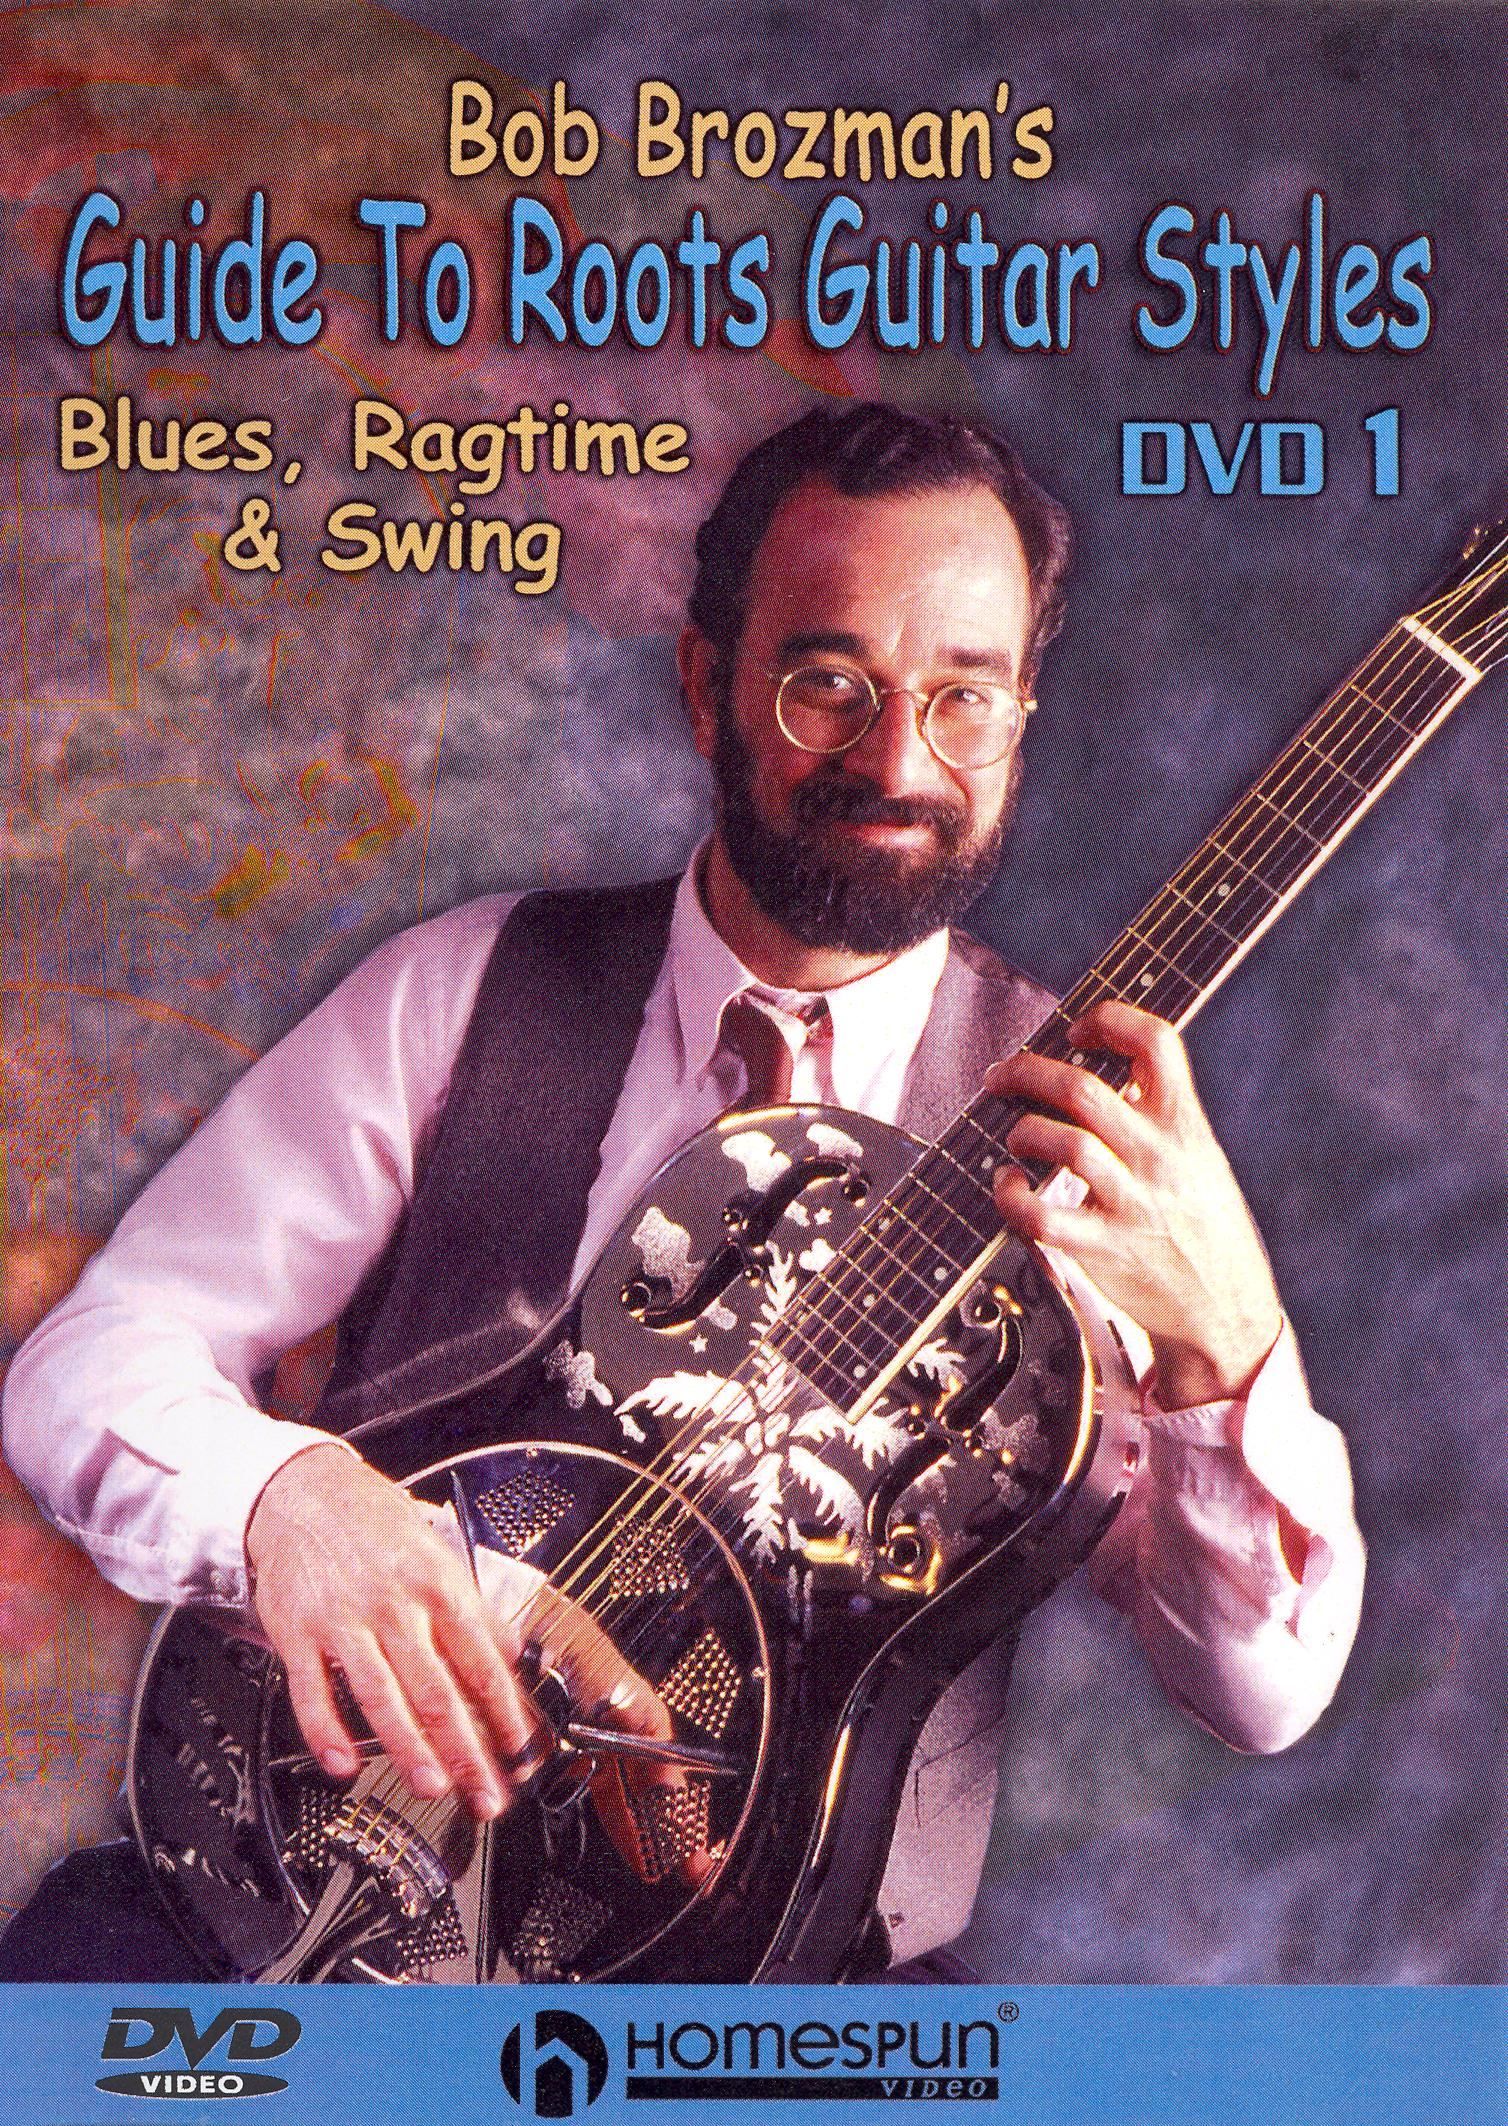 Bob Brozman's Guide to Roots Guitar Styles, Vol. 1